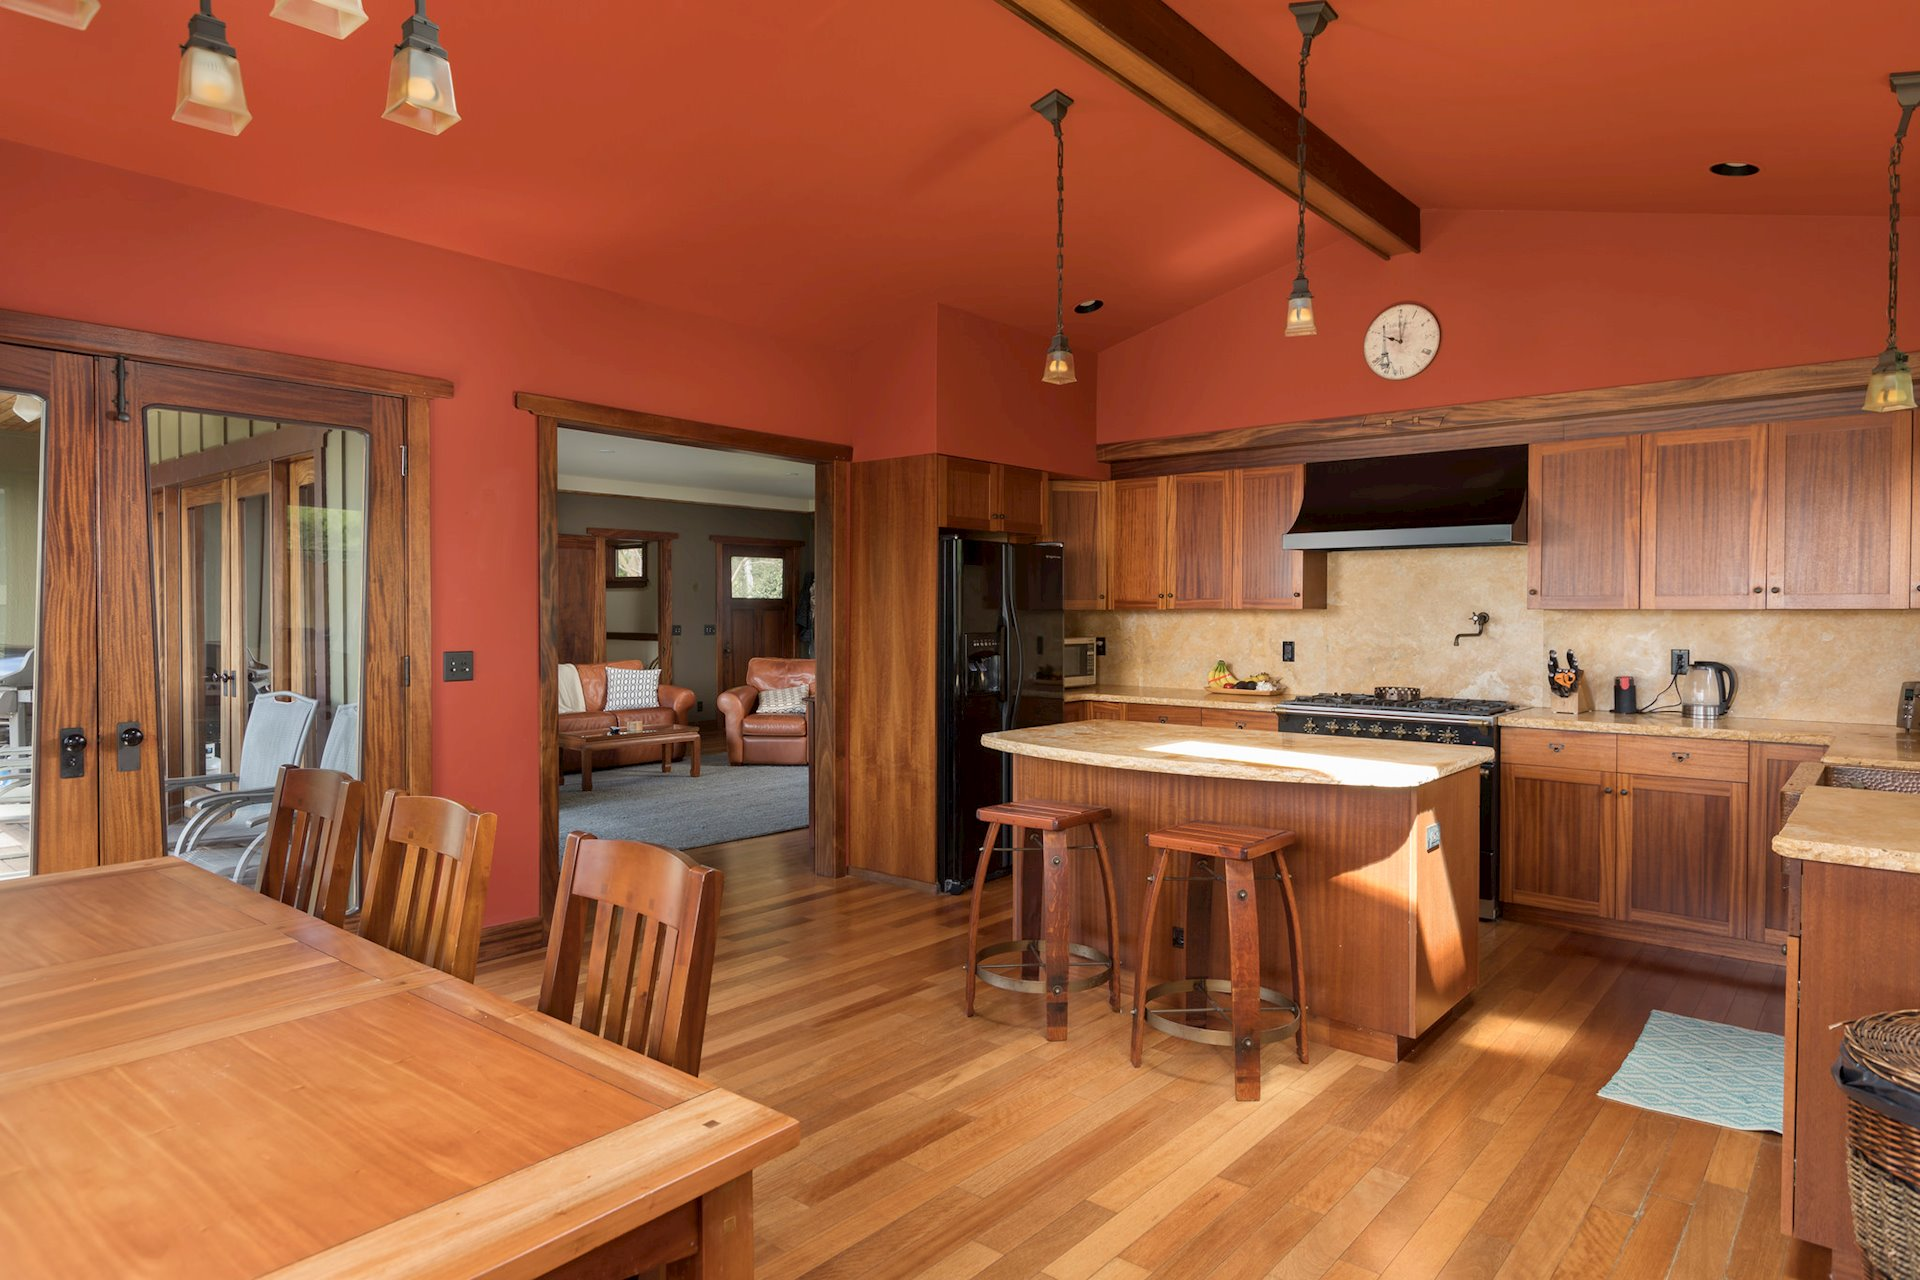 The flooring is engineered and the finish is solvent free, the wood species is Asian mahogany.